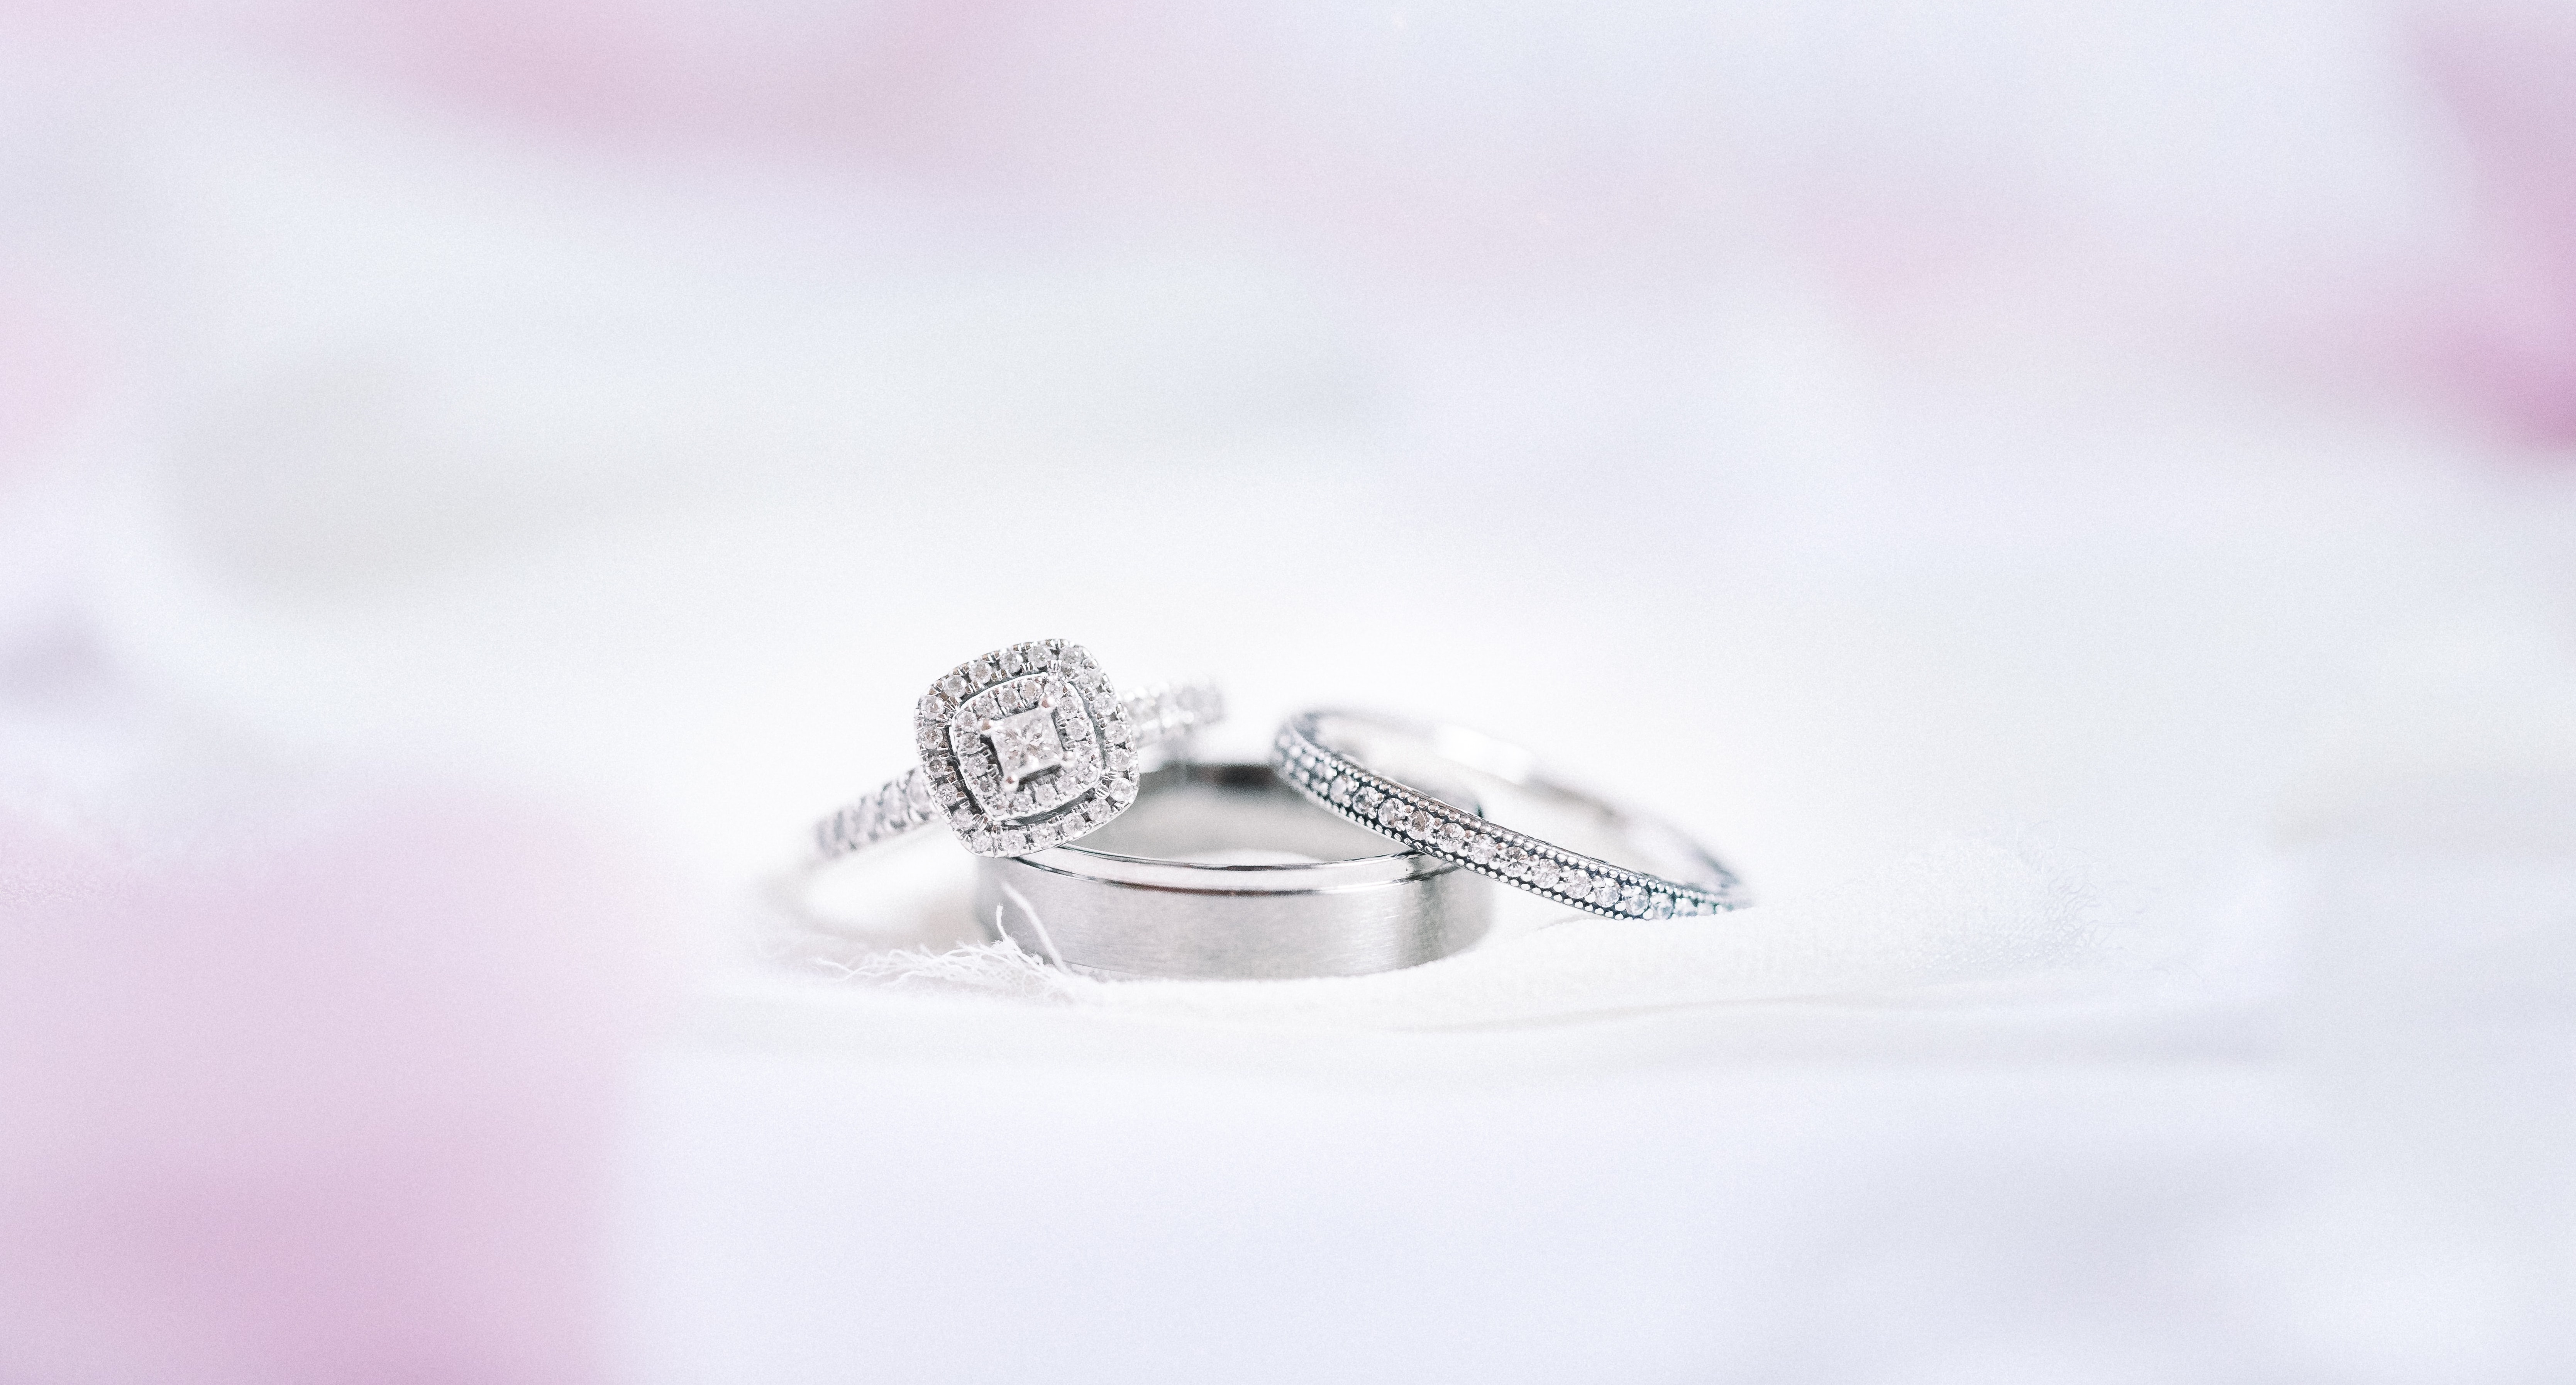 Wedding Rings 101: A Guide to Engagement Rings & Weddings Bands